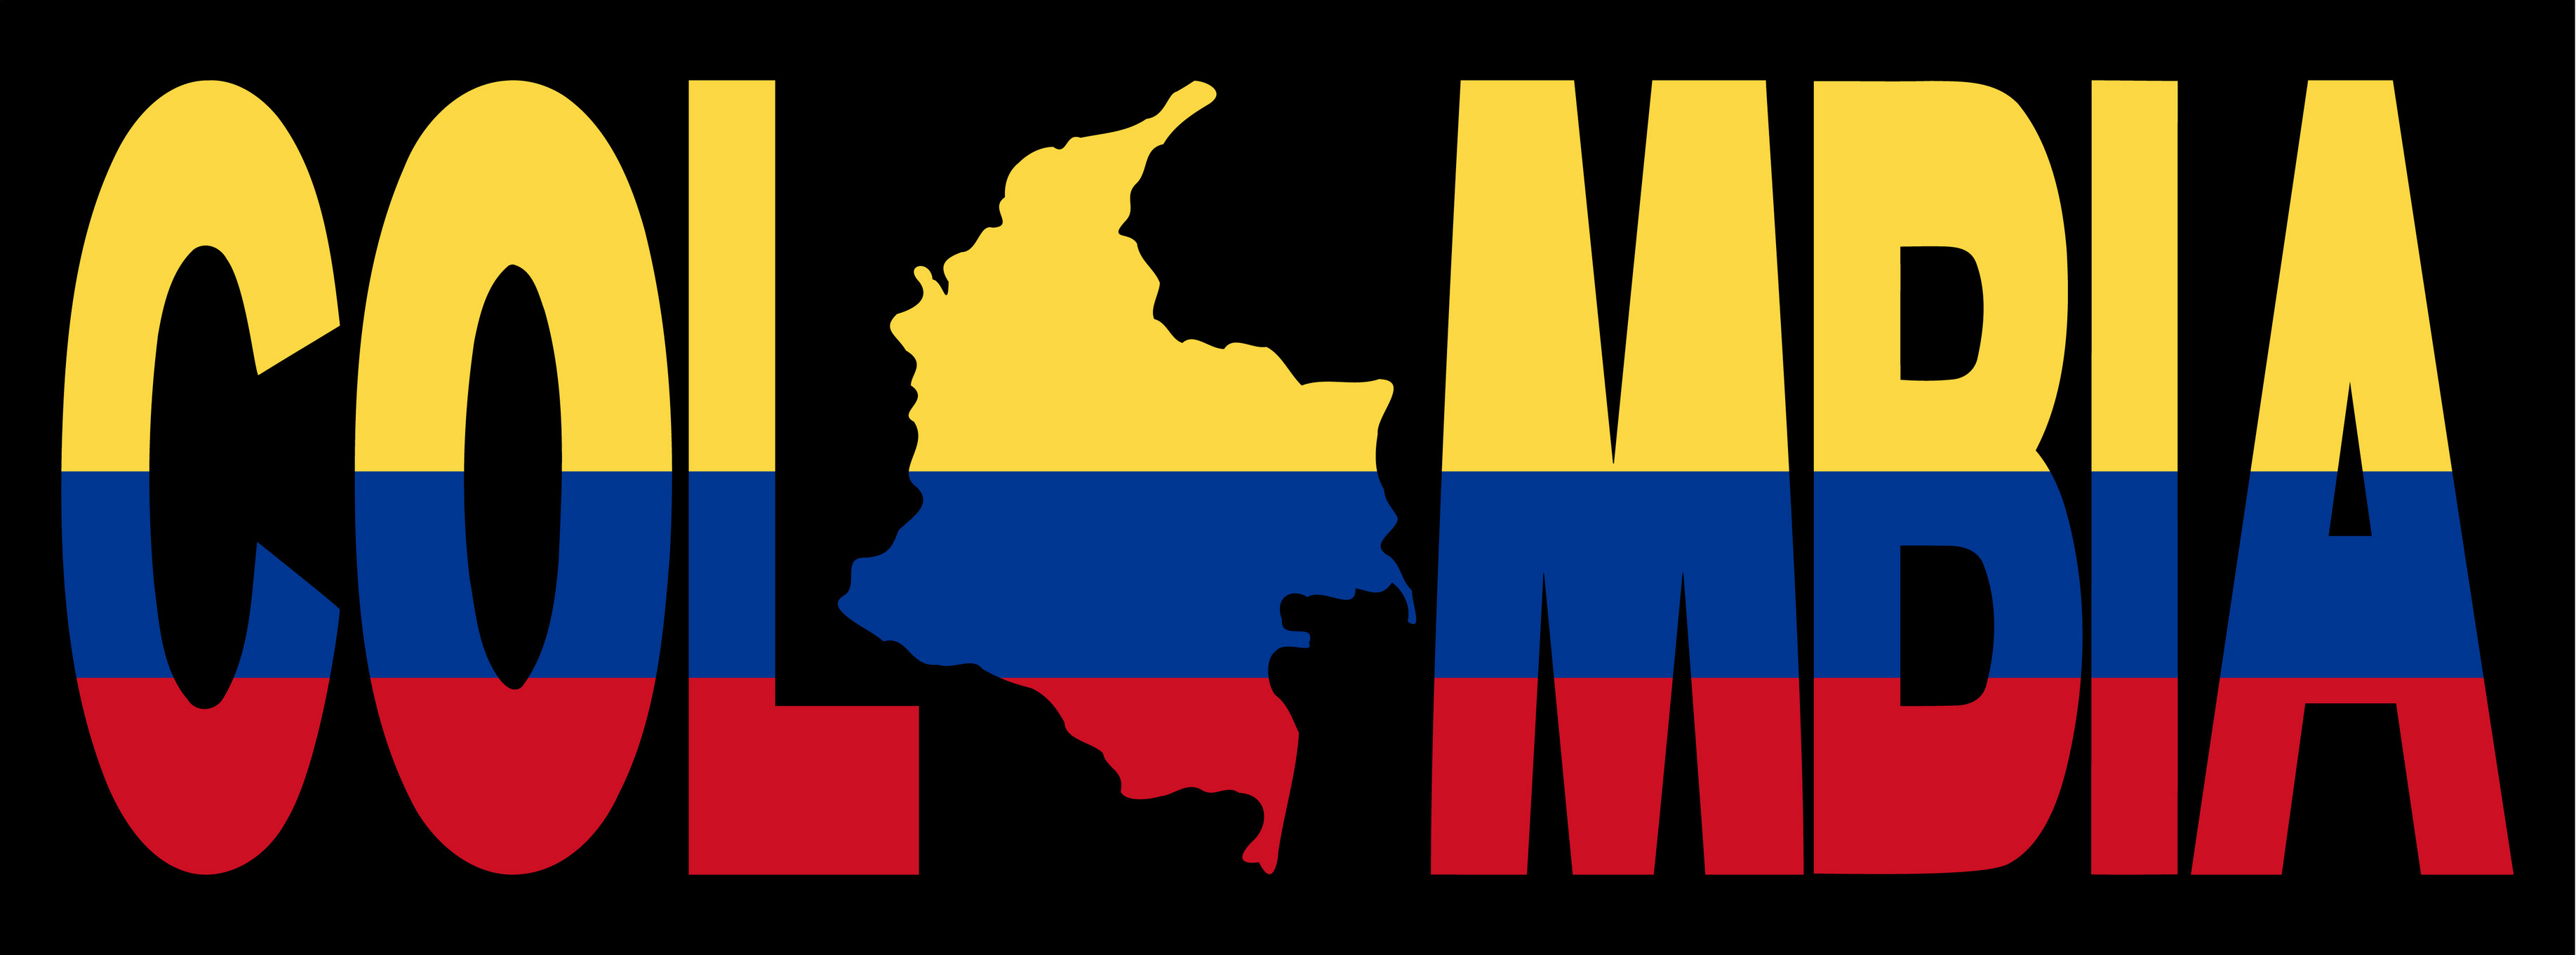 Res: 3671x1361, Colombia images Colombia HD wallpaper and background photos